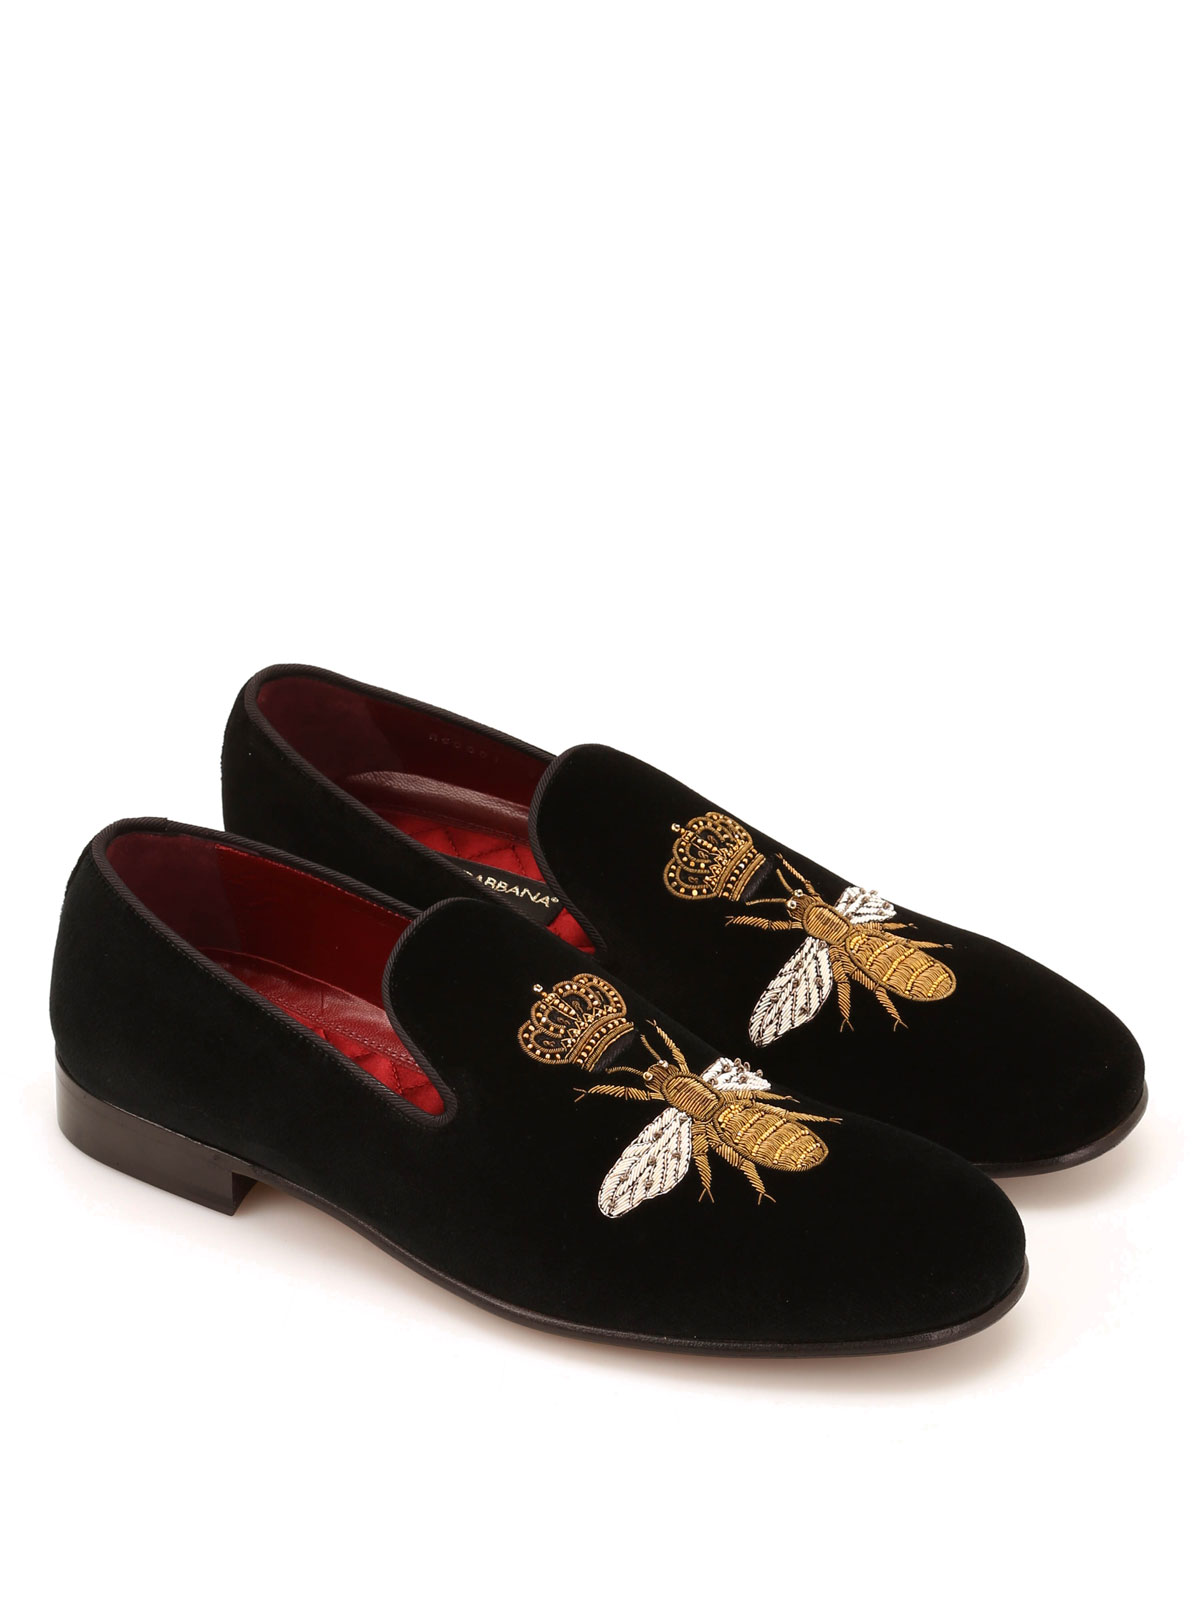 9ab545ada3b35 DOLCE   GABBANA  Mocassini e slippers online - Pantofola Milano in velluto